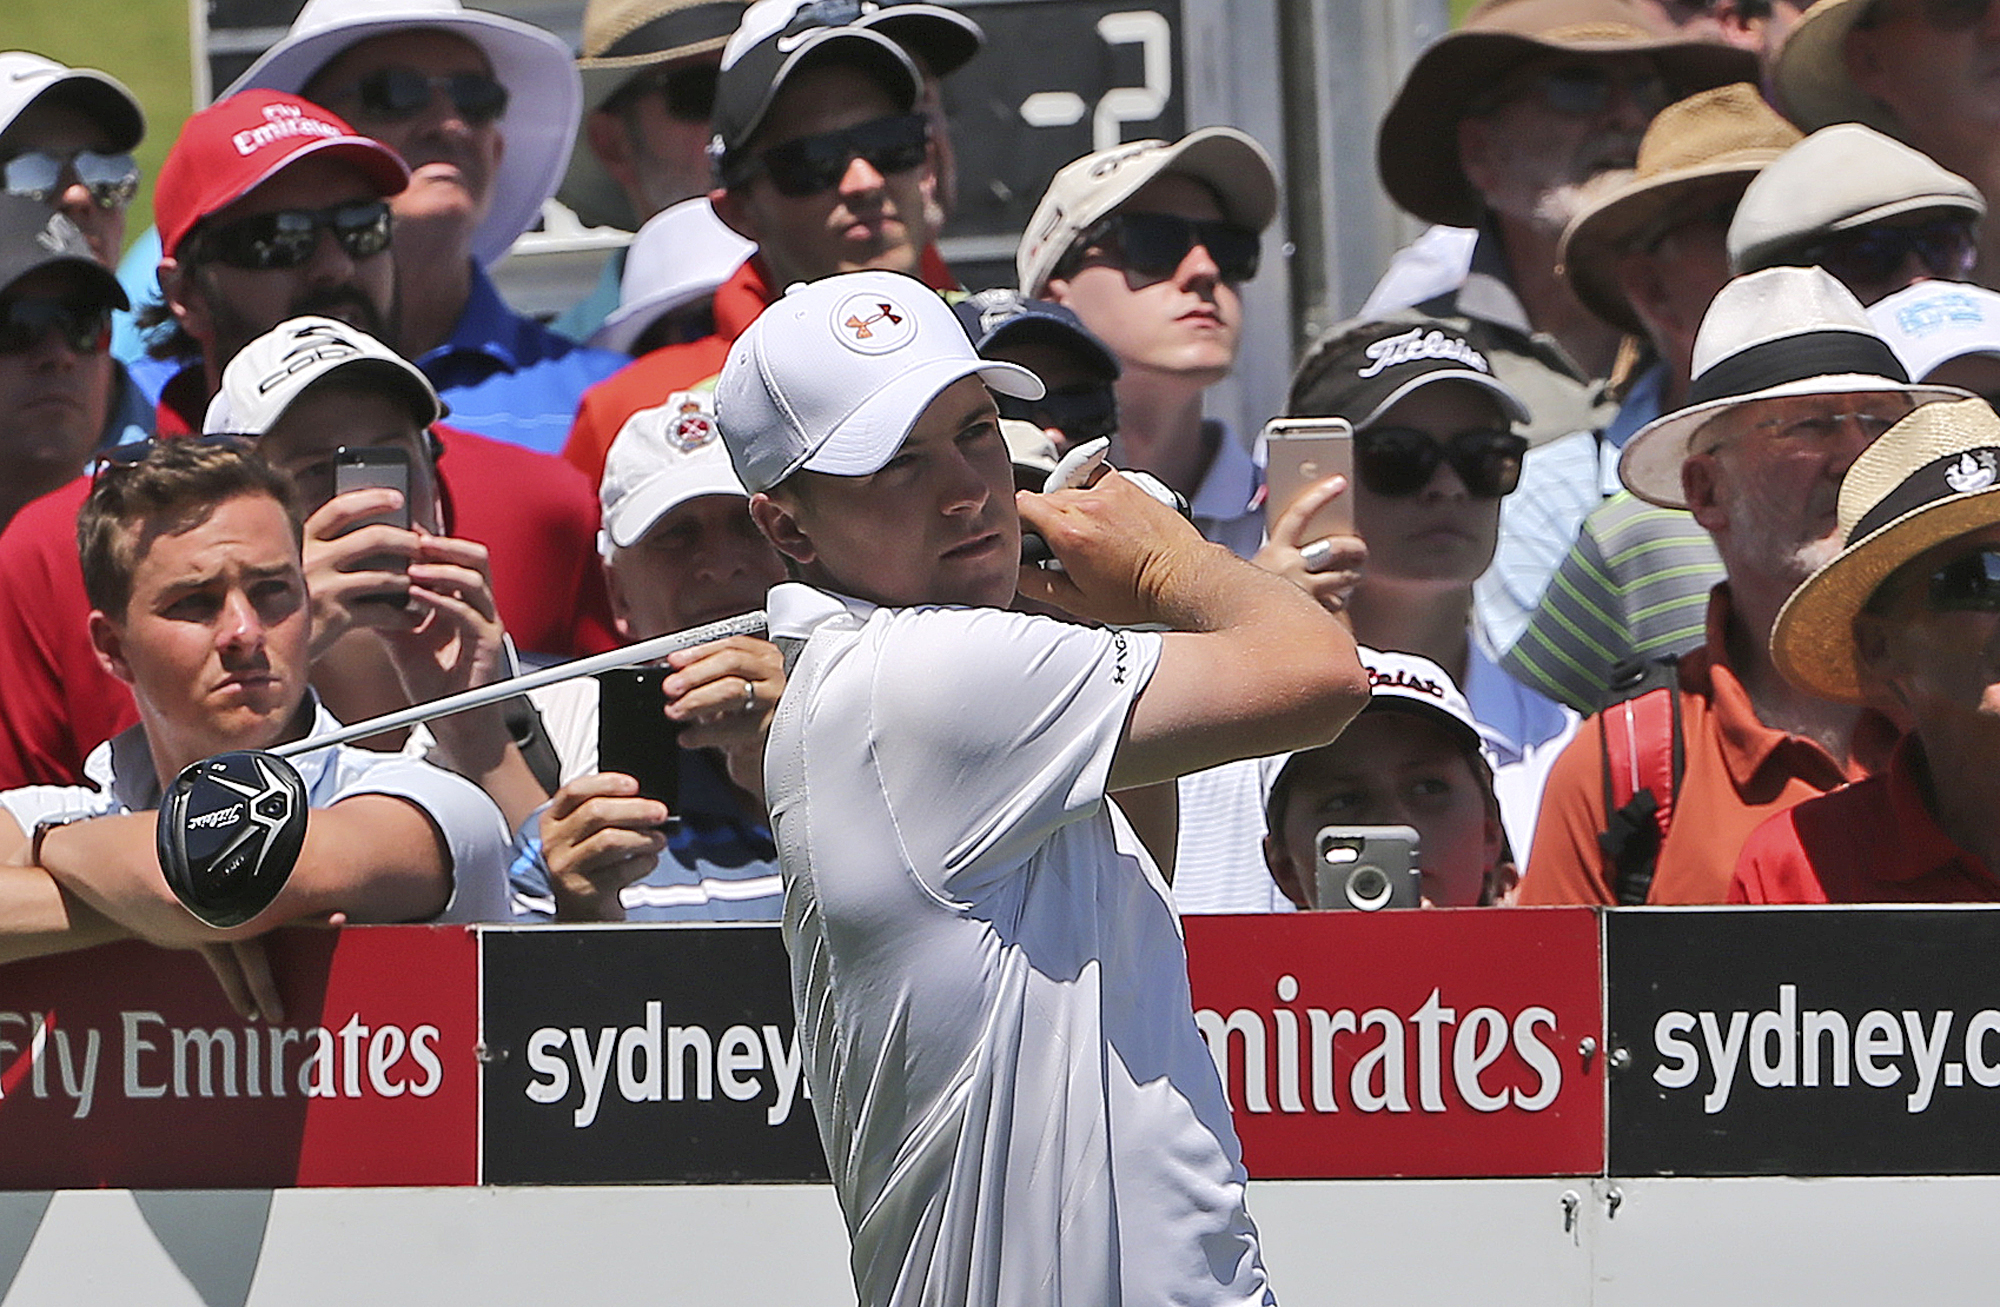 Jordan Spieth of the U.S. tees off on the 8th hole during the Australia Open Golf Tournament in Sydney, Australia, Thursday, Nov. 26, 2015. (AP Photo/Rob Griffith)